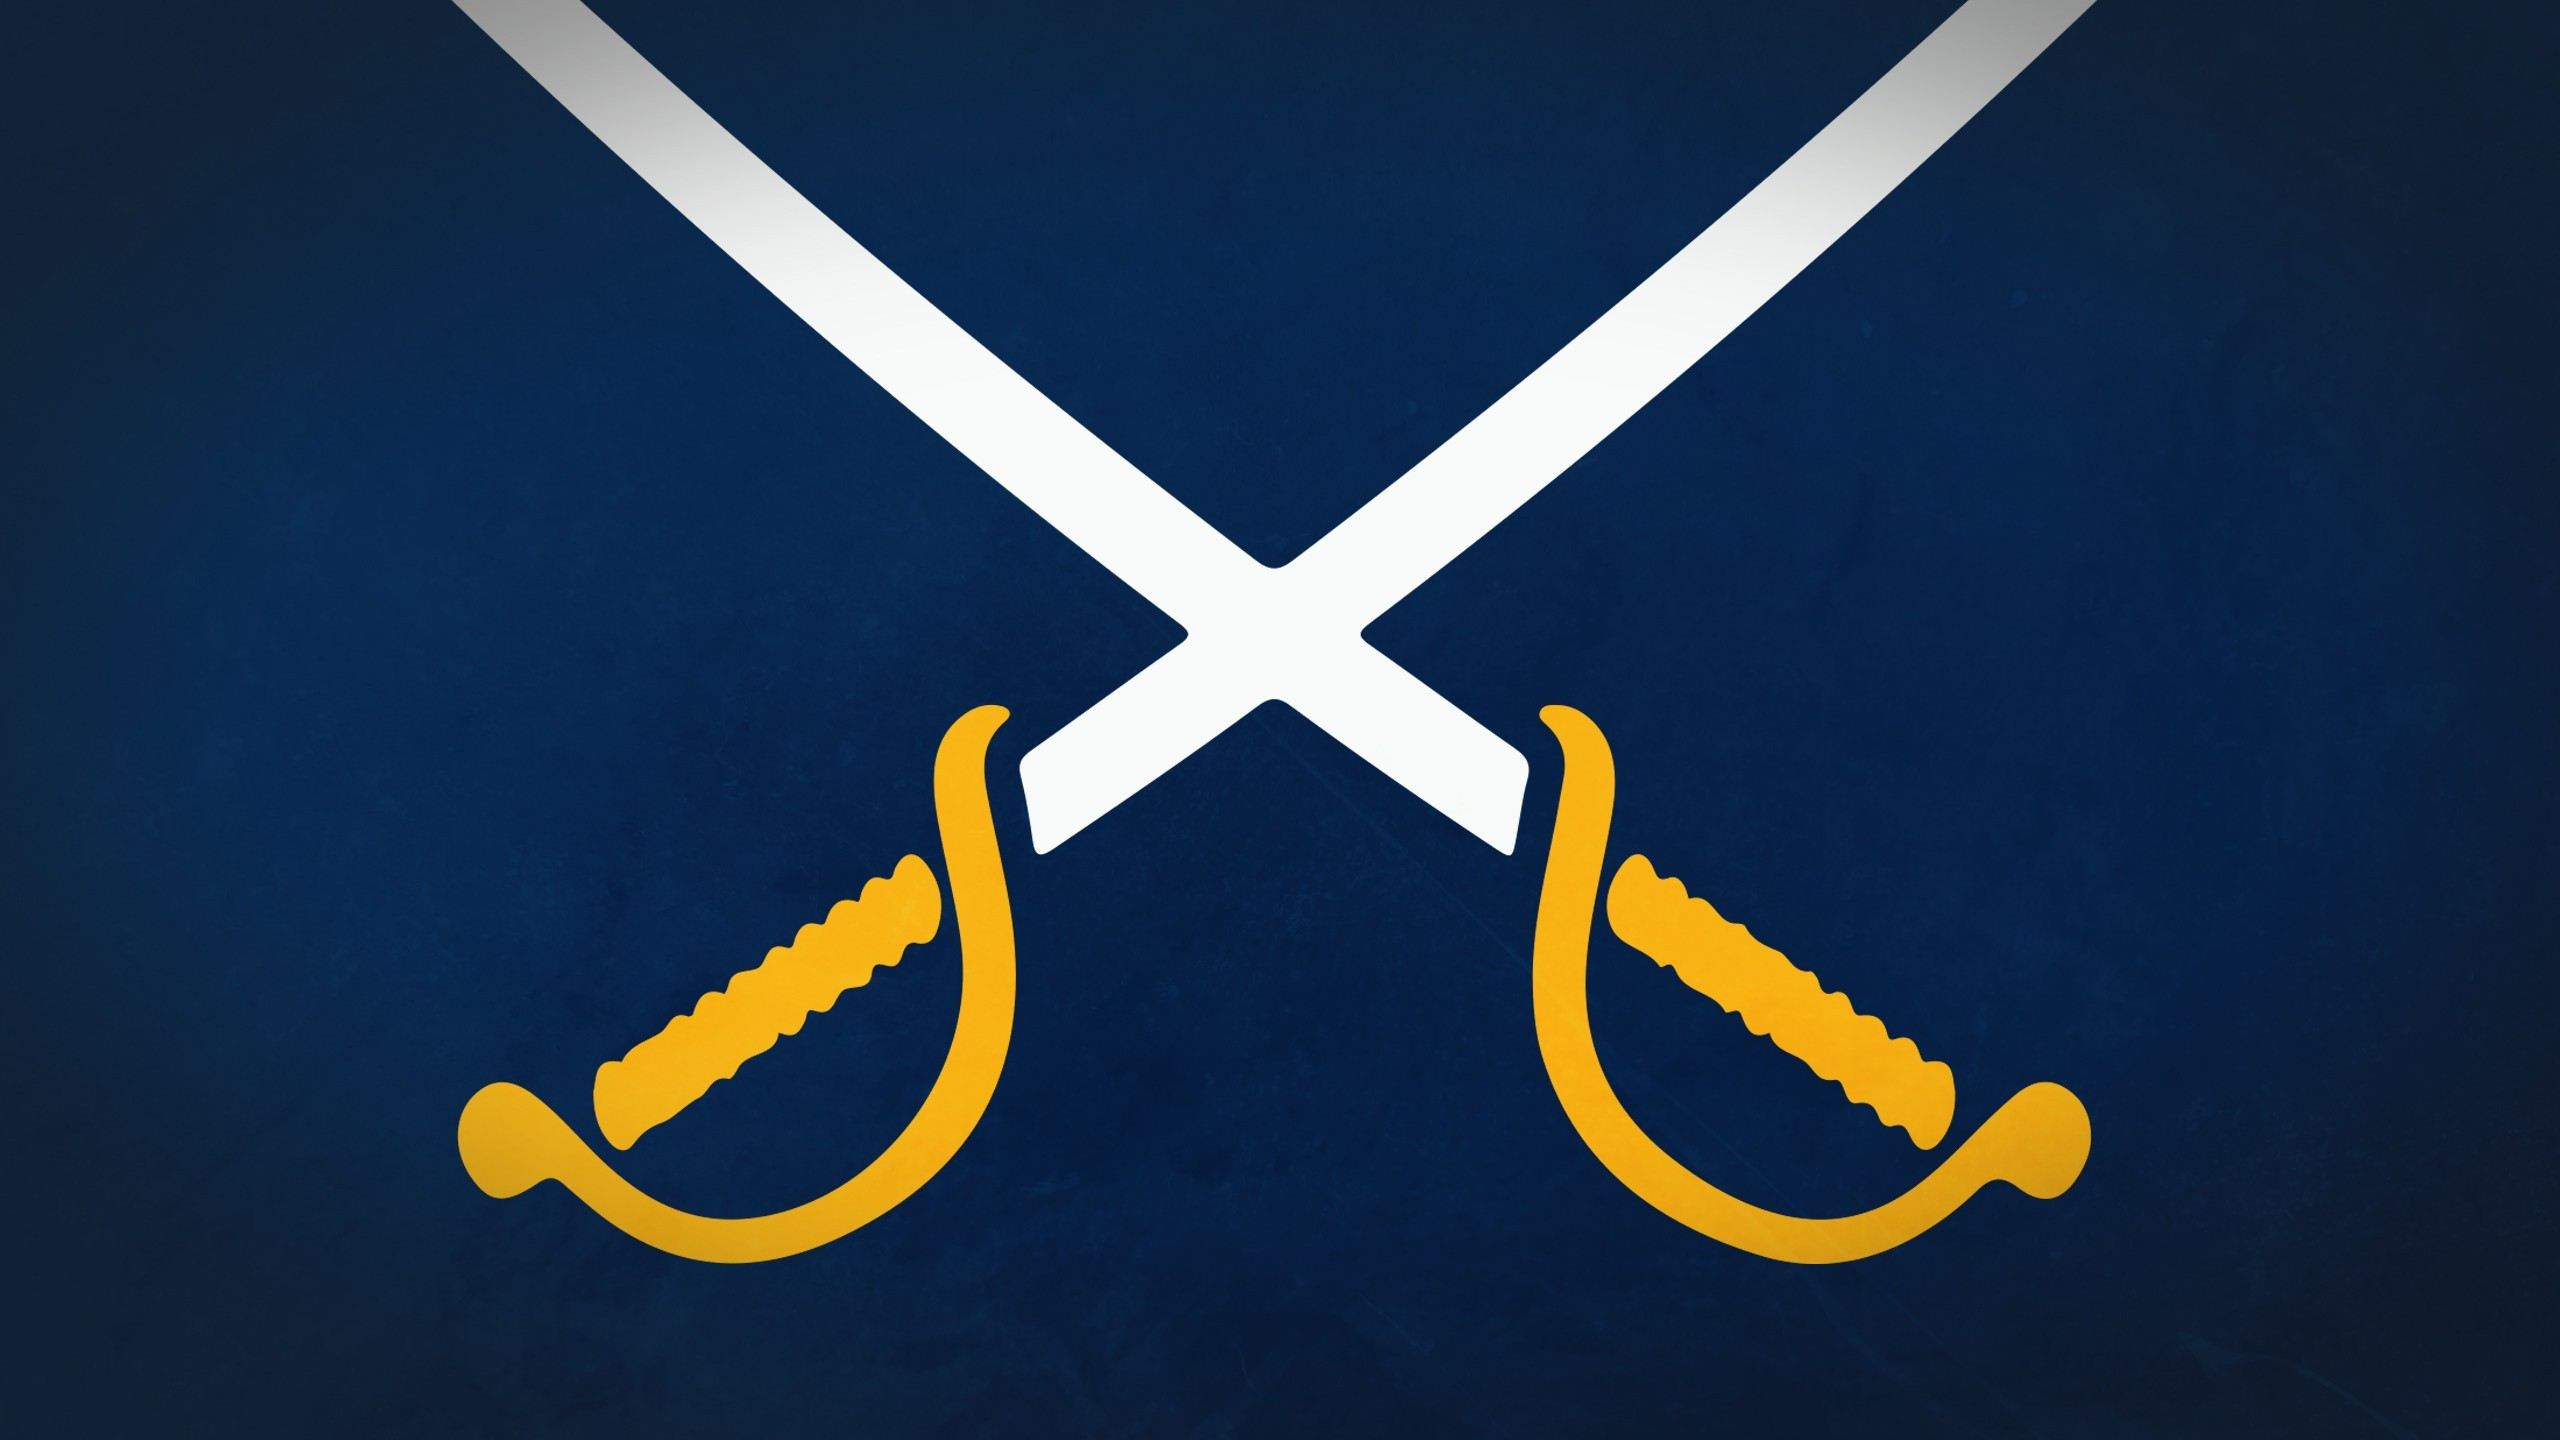 2560x1440 - Buffalo Sabres Wallpapers 22